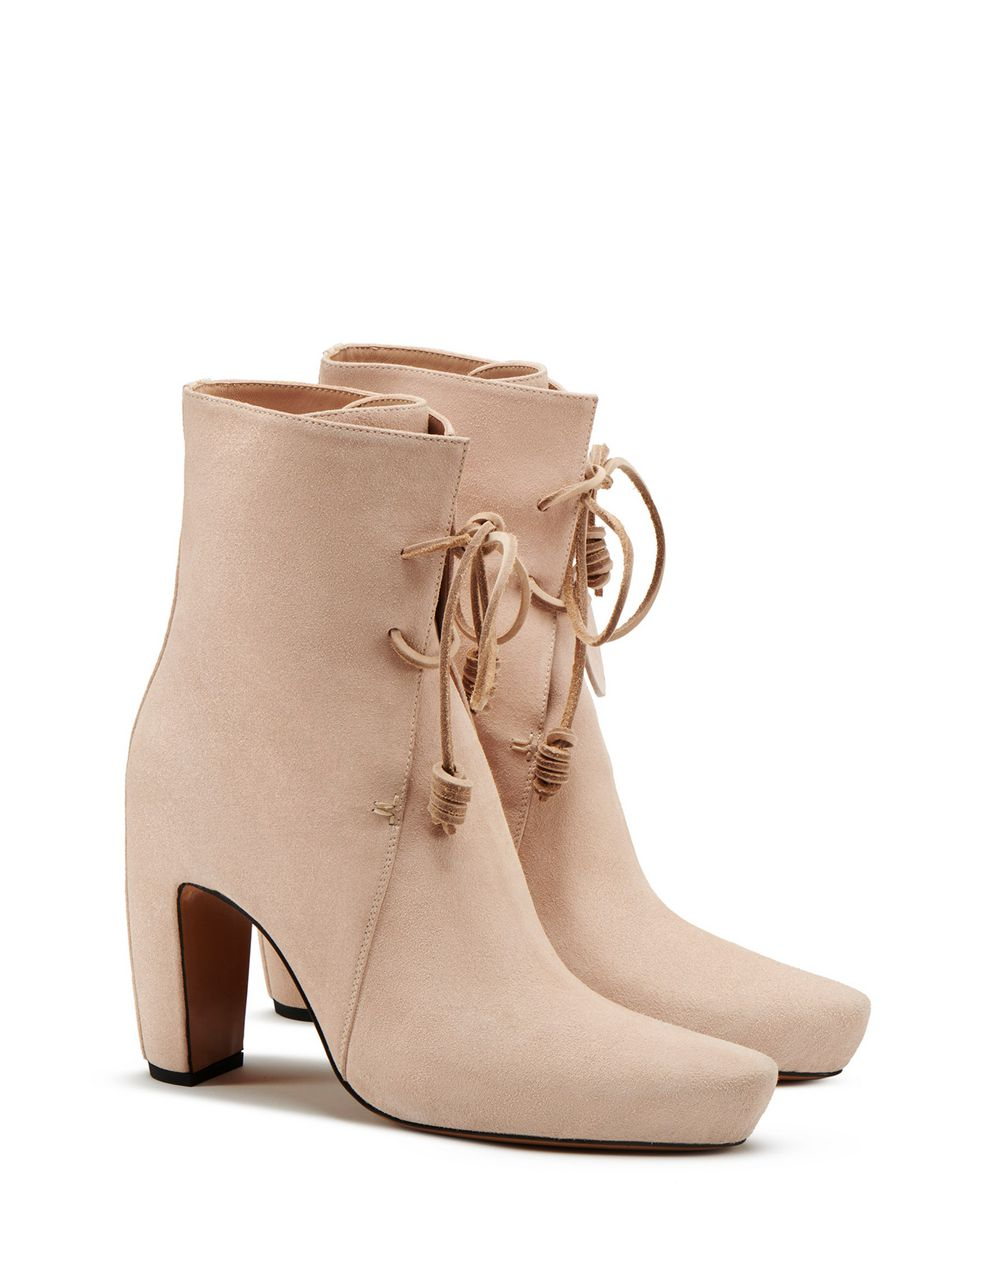 LEATHER ANKLE BOOTS WITH LACES  - Lanvin